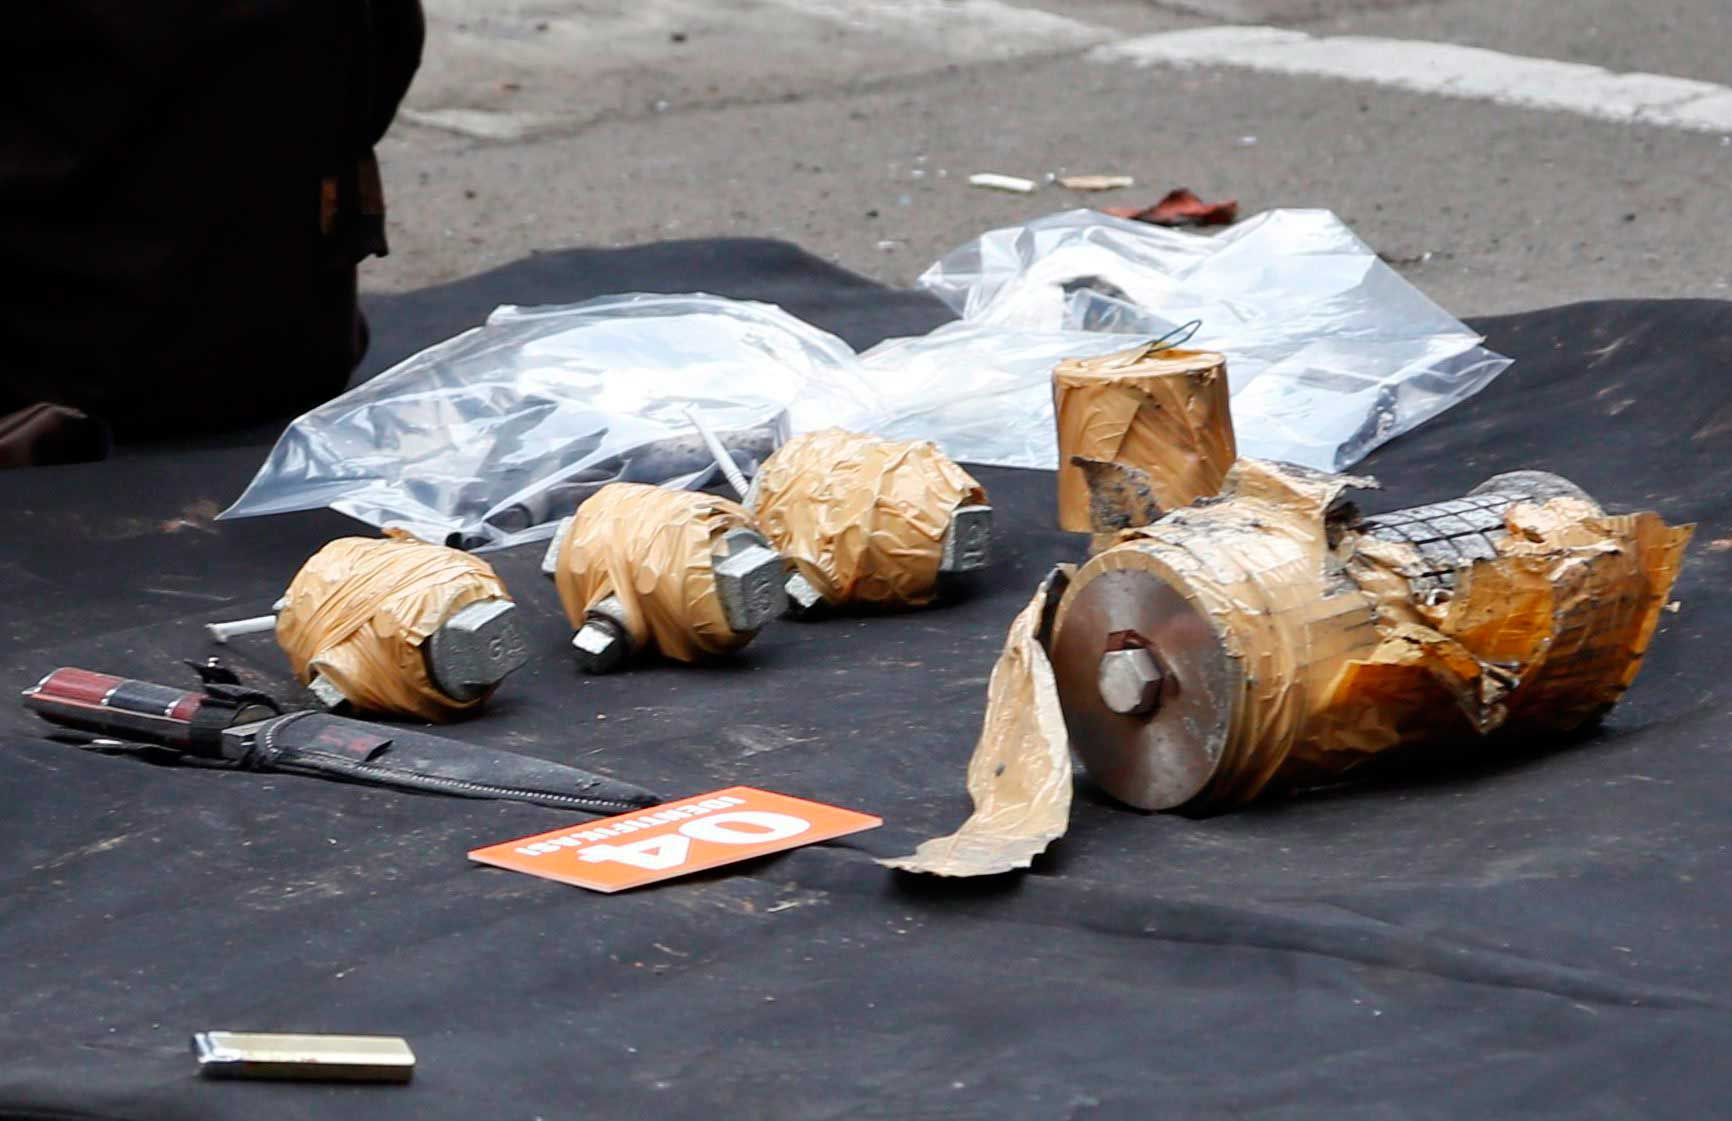 The weapons arsenal that suspected terrorists were carrying after a bomb blast in front of a shopping mall in Jakarta, Indonesia, Jan. 14, 2016. Assailants struck outside a Starbucks cafe and a police post near the well-known Sarinah shopping complex.